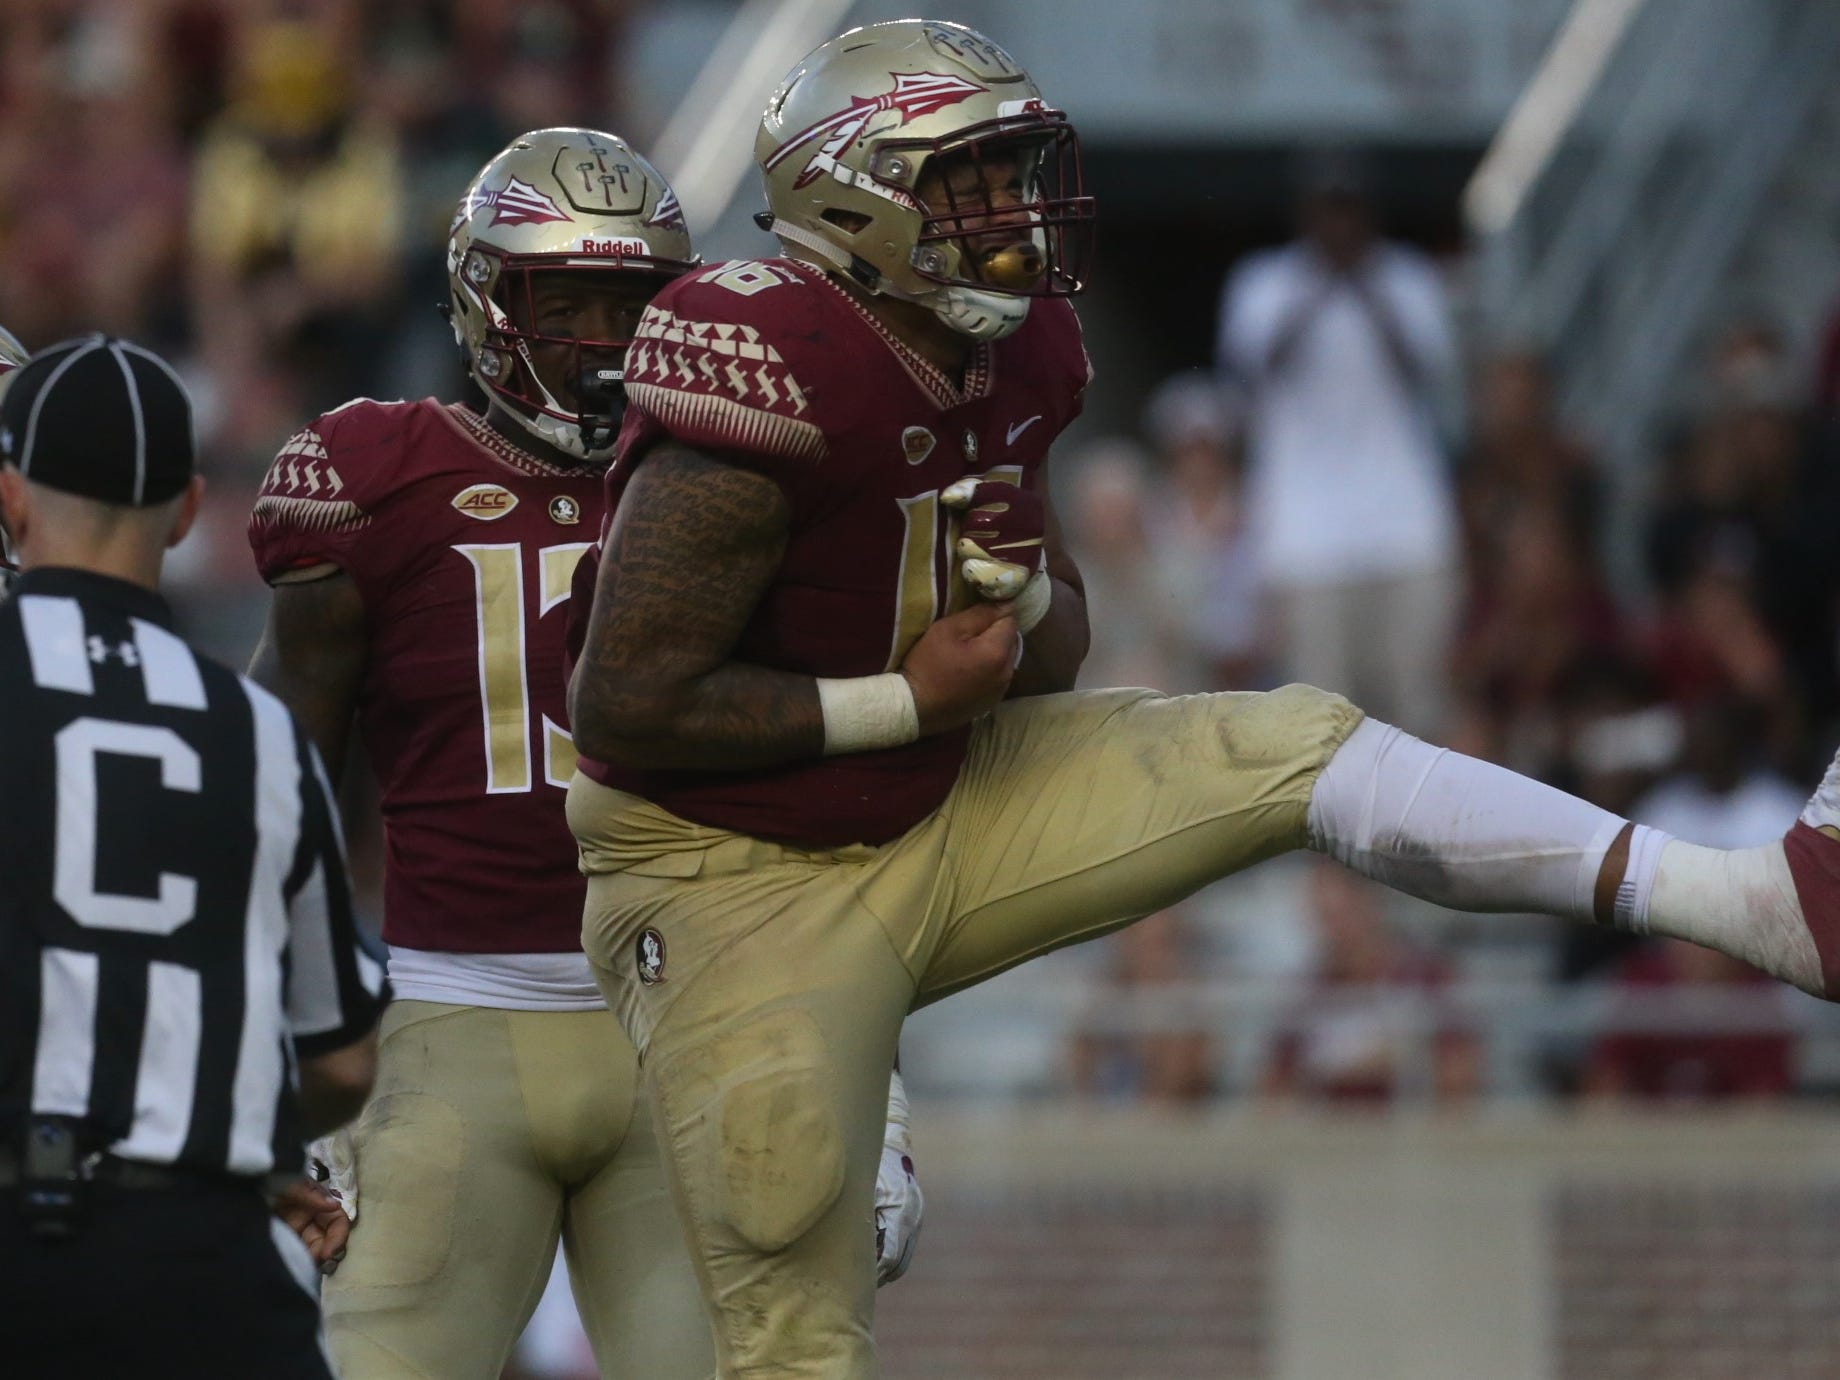 Florida State defensive tackle Cory Durden celebrates a sack against Wake Forest during a game at Doak Campbell Stadium on Saturday, Oct. 20, 2018.